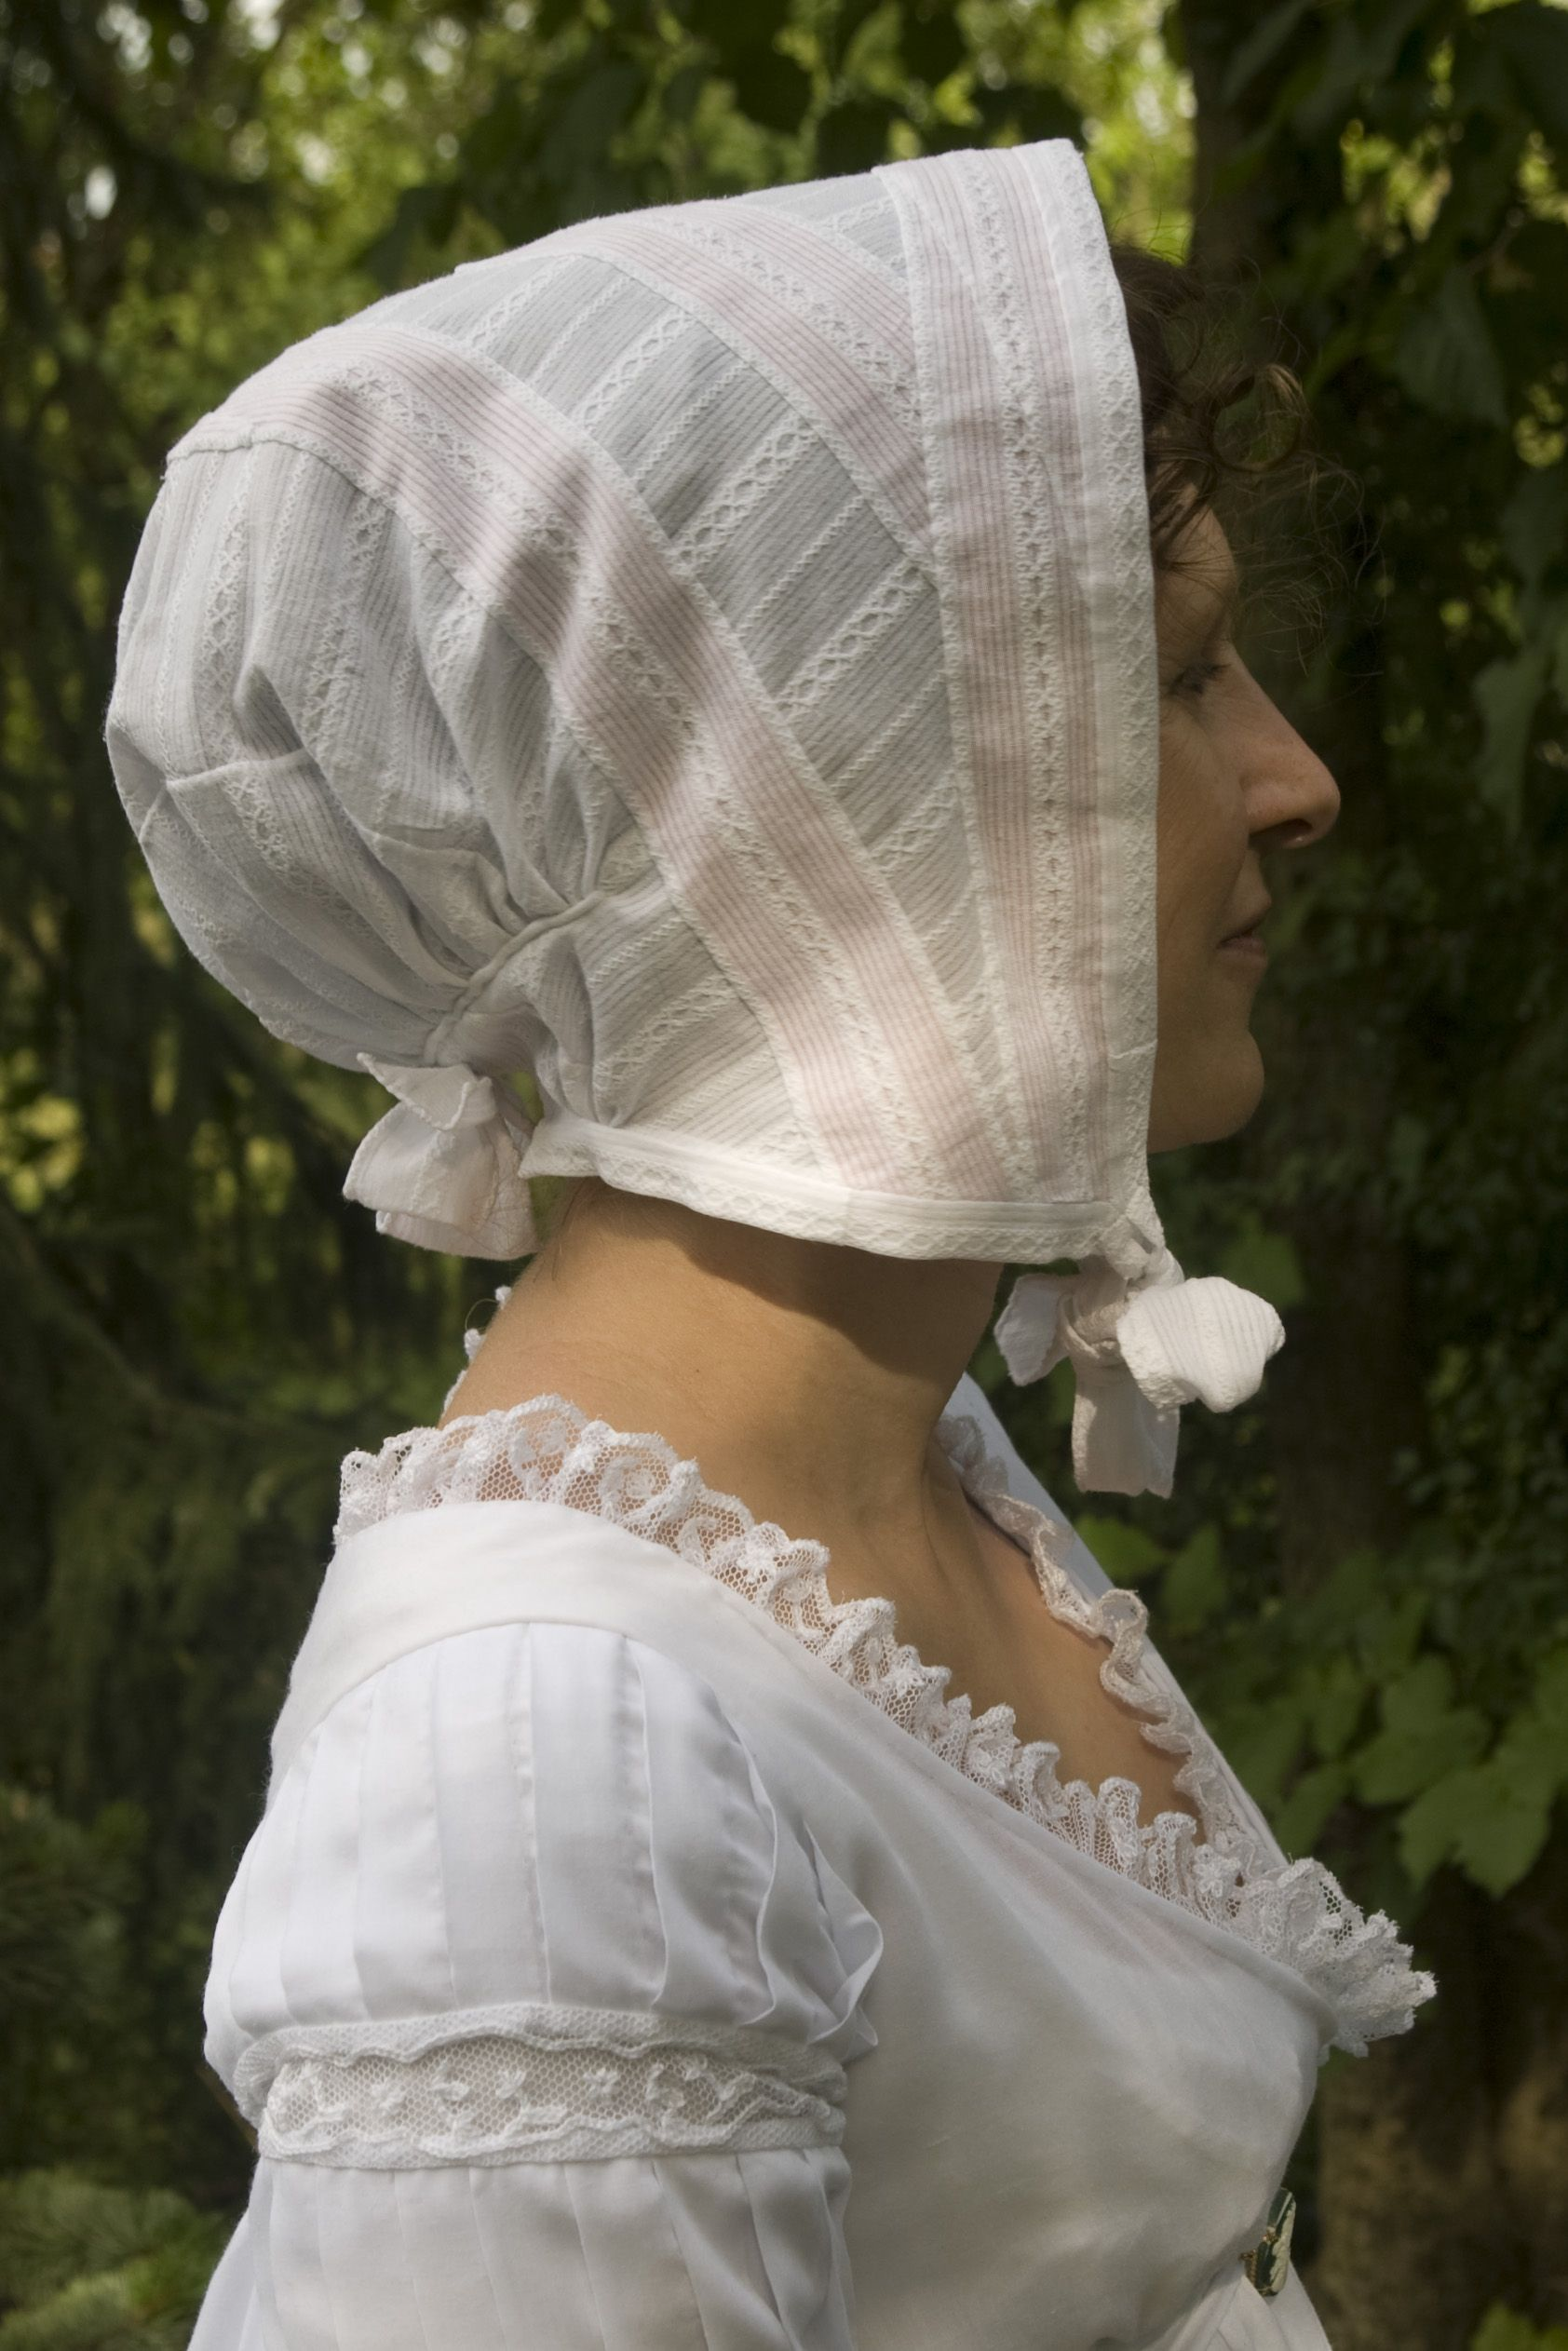 A Regency Dimity Cap Made According To The Dimity Cap Early 19th